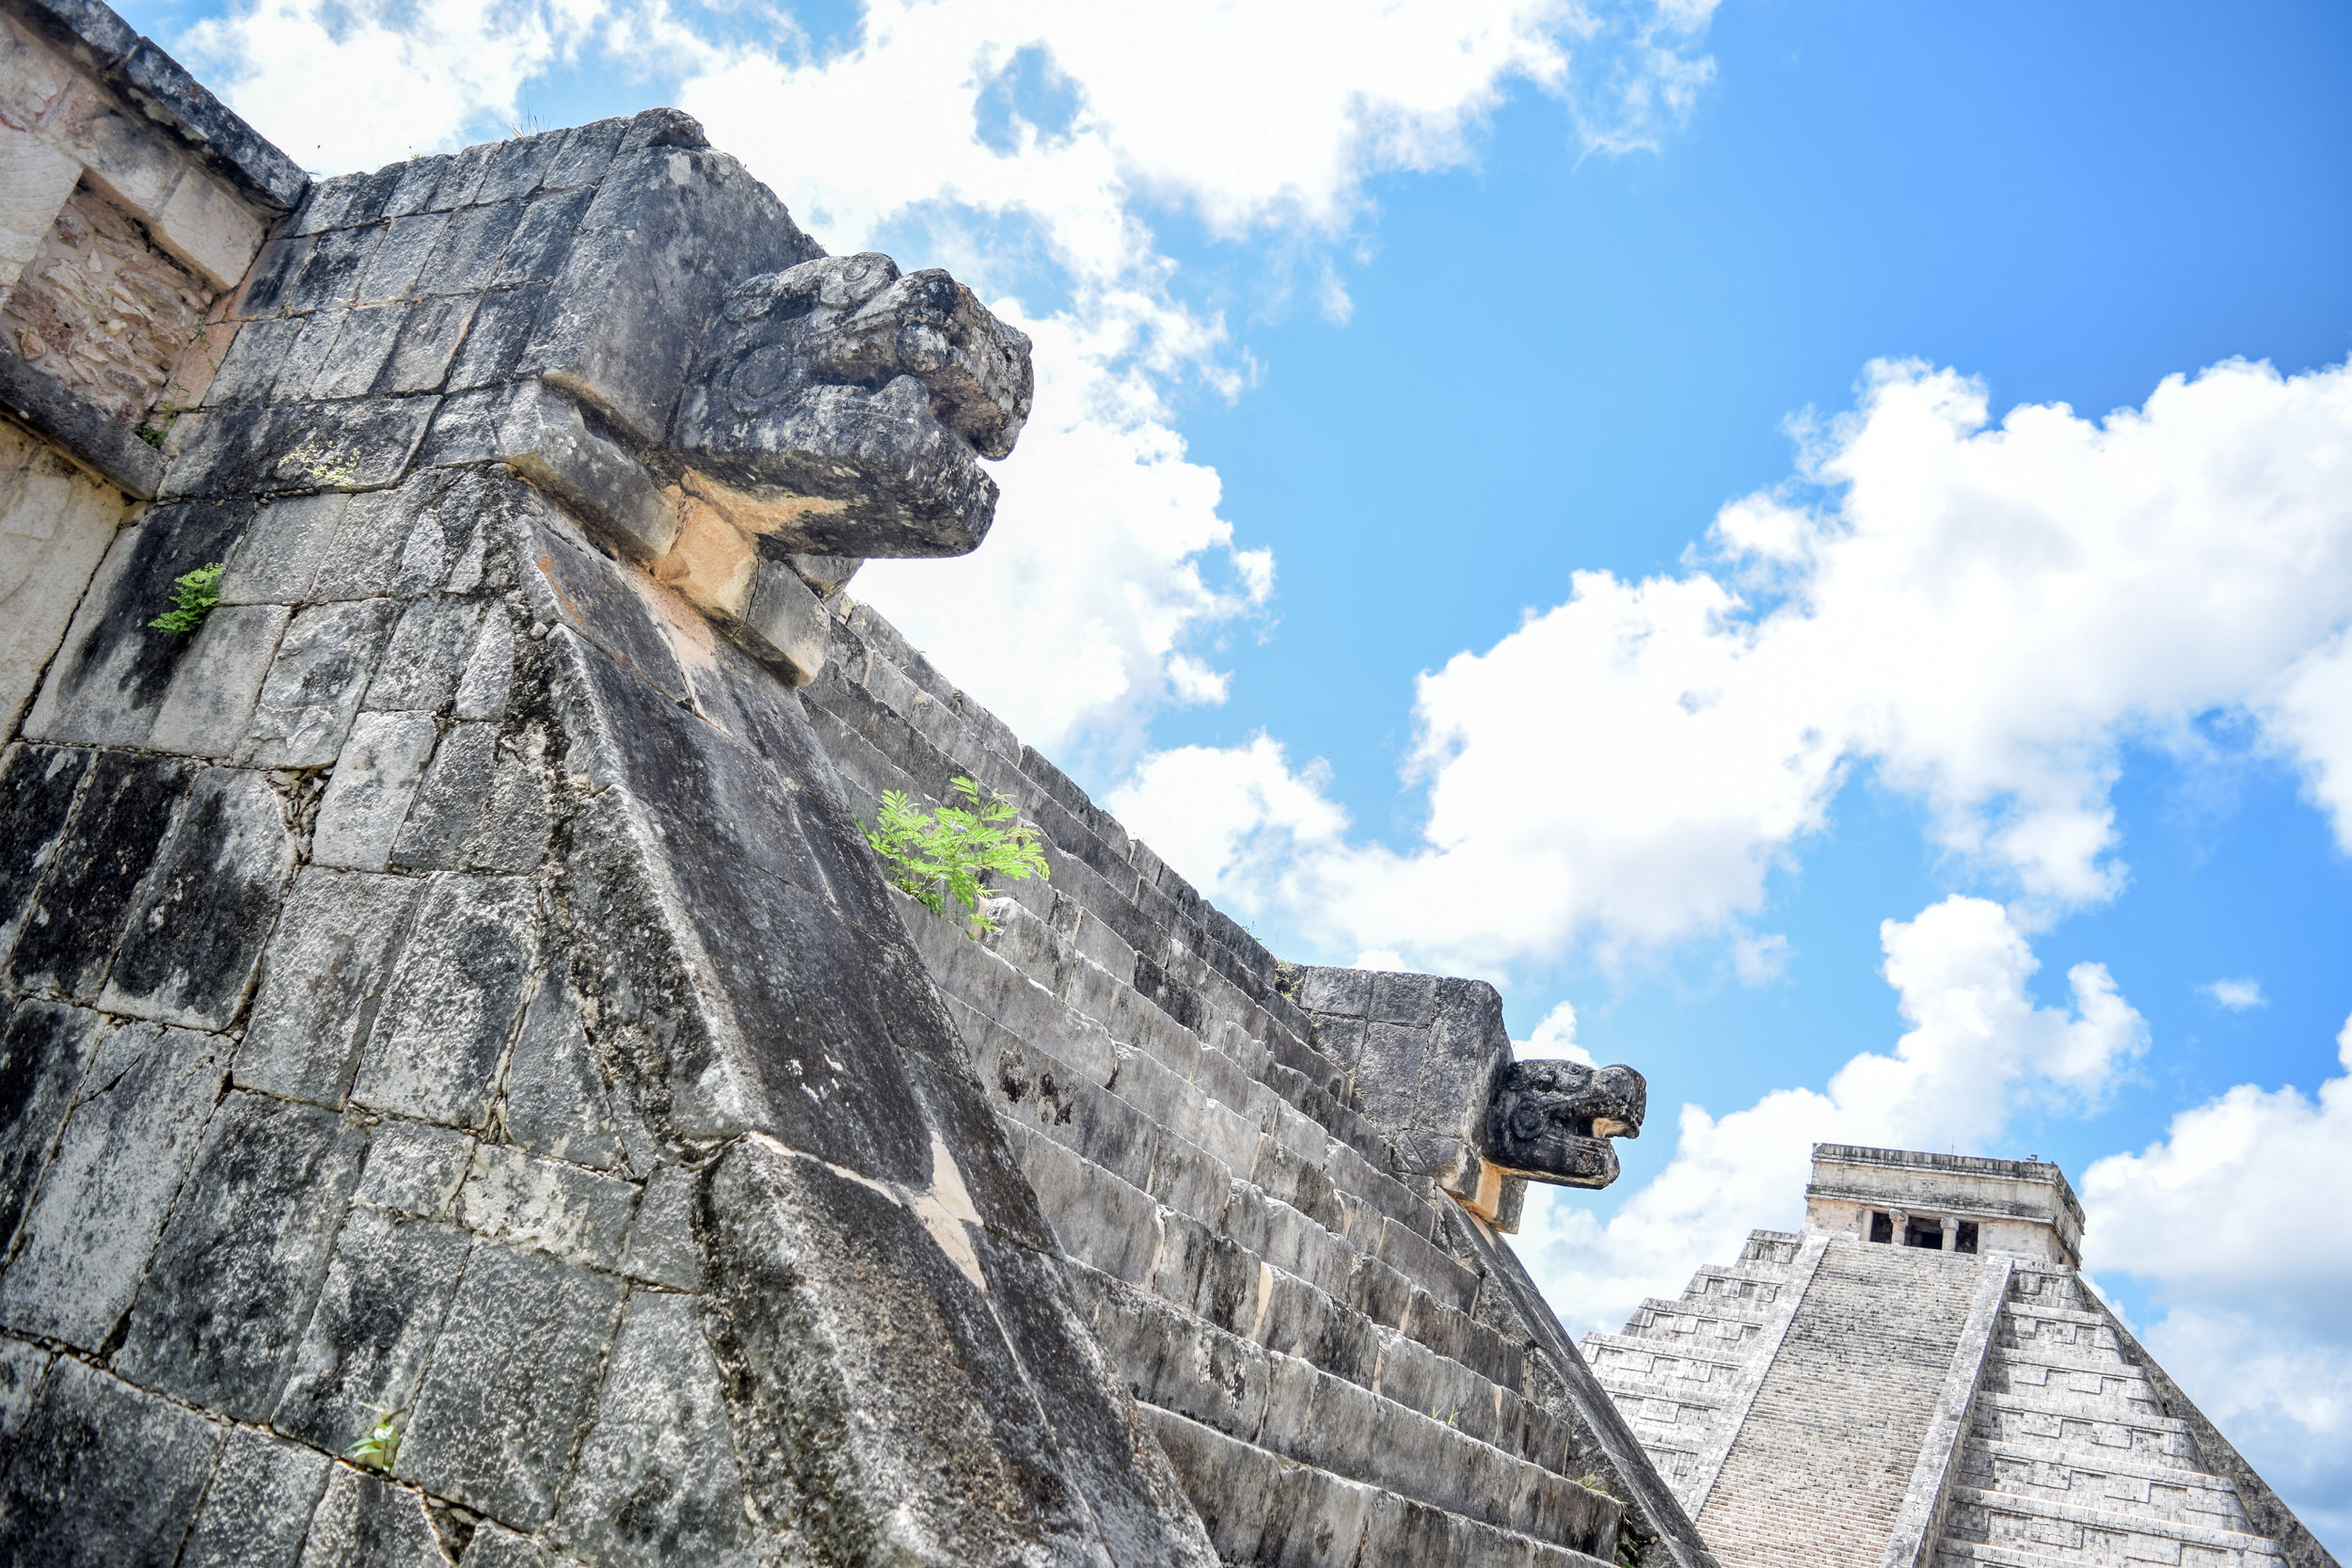 The Ruins of Chichen Itza